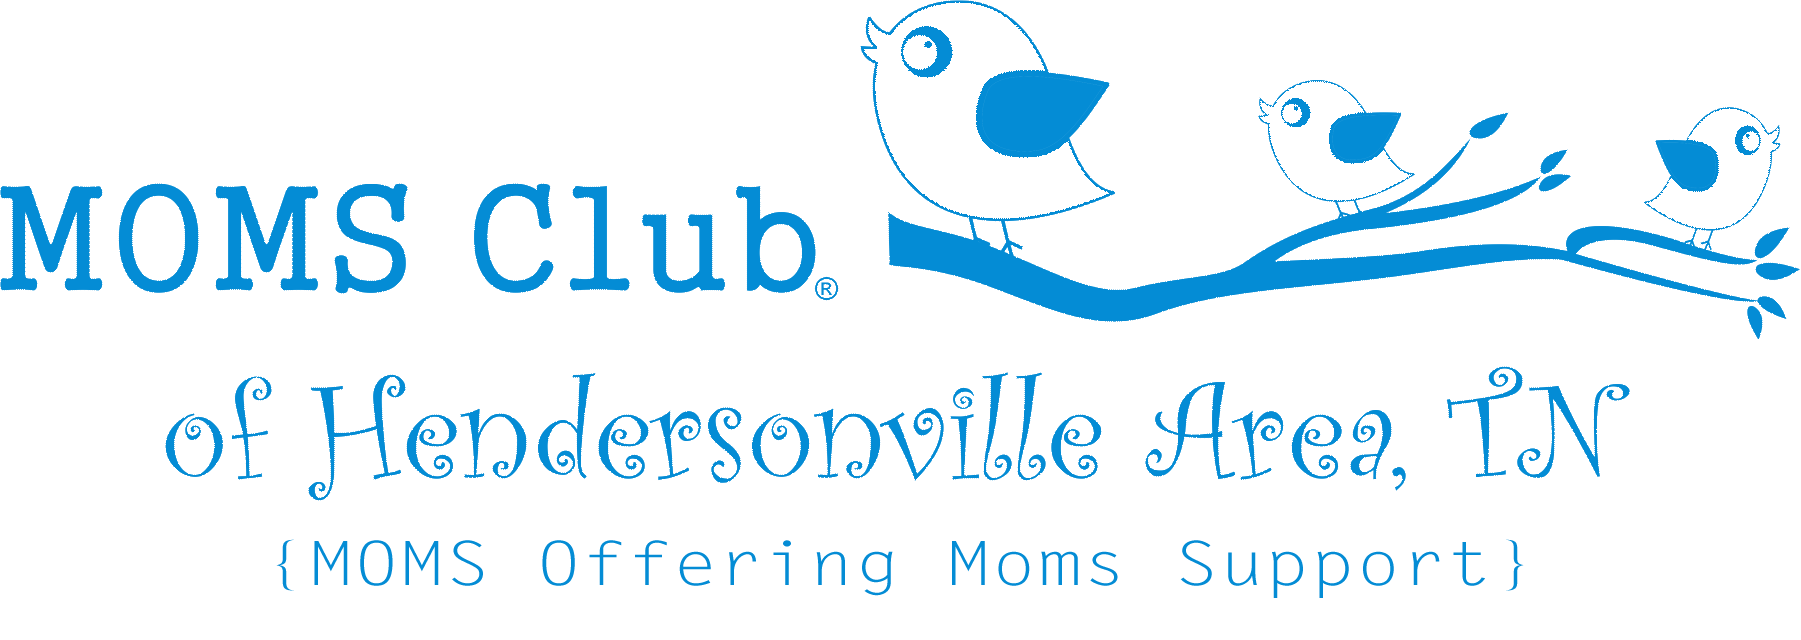 MOMS Club® of Hendersonville